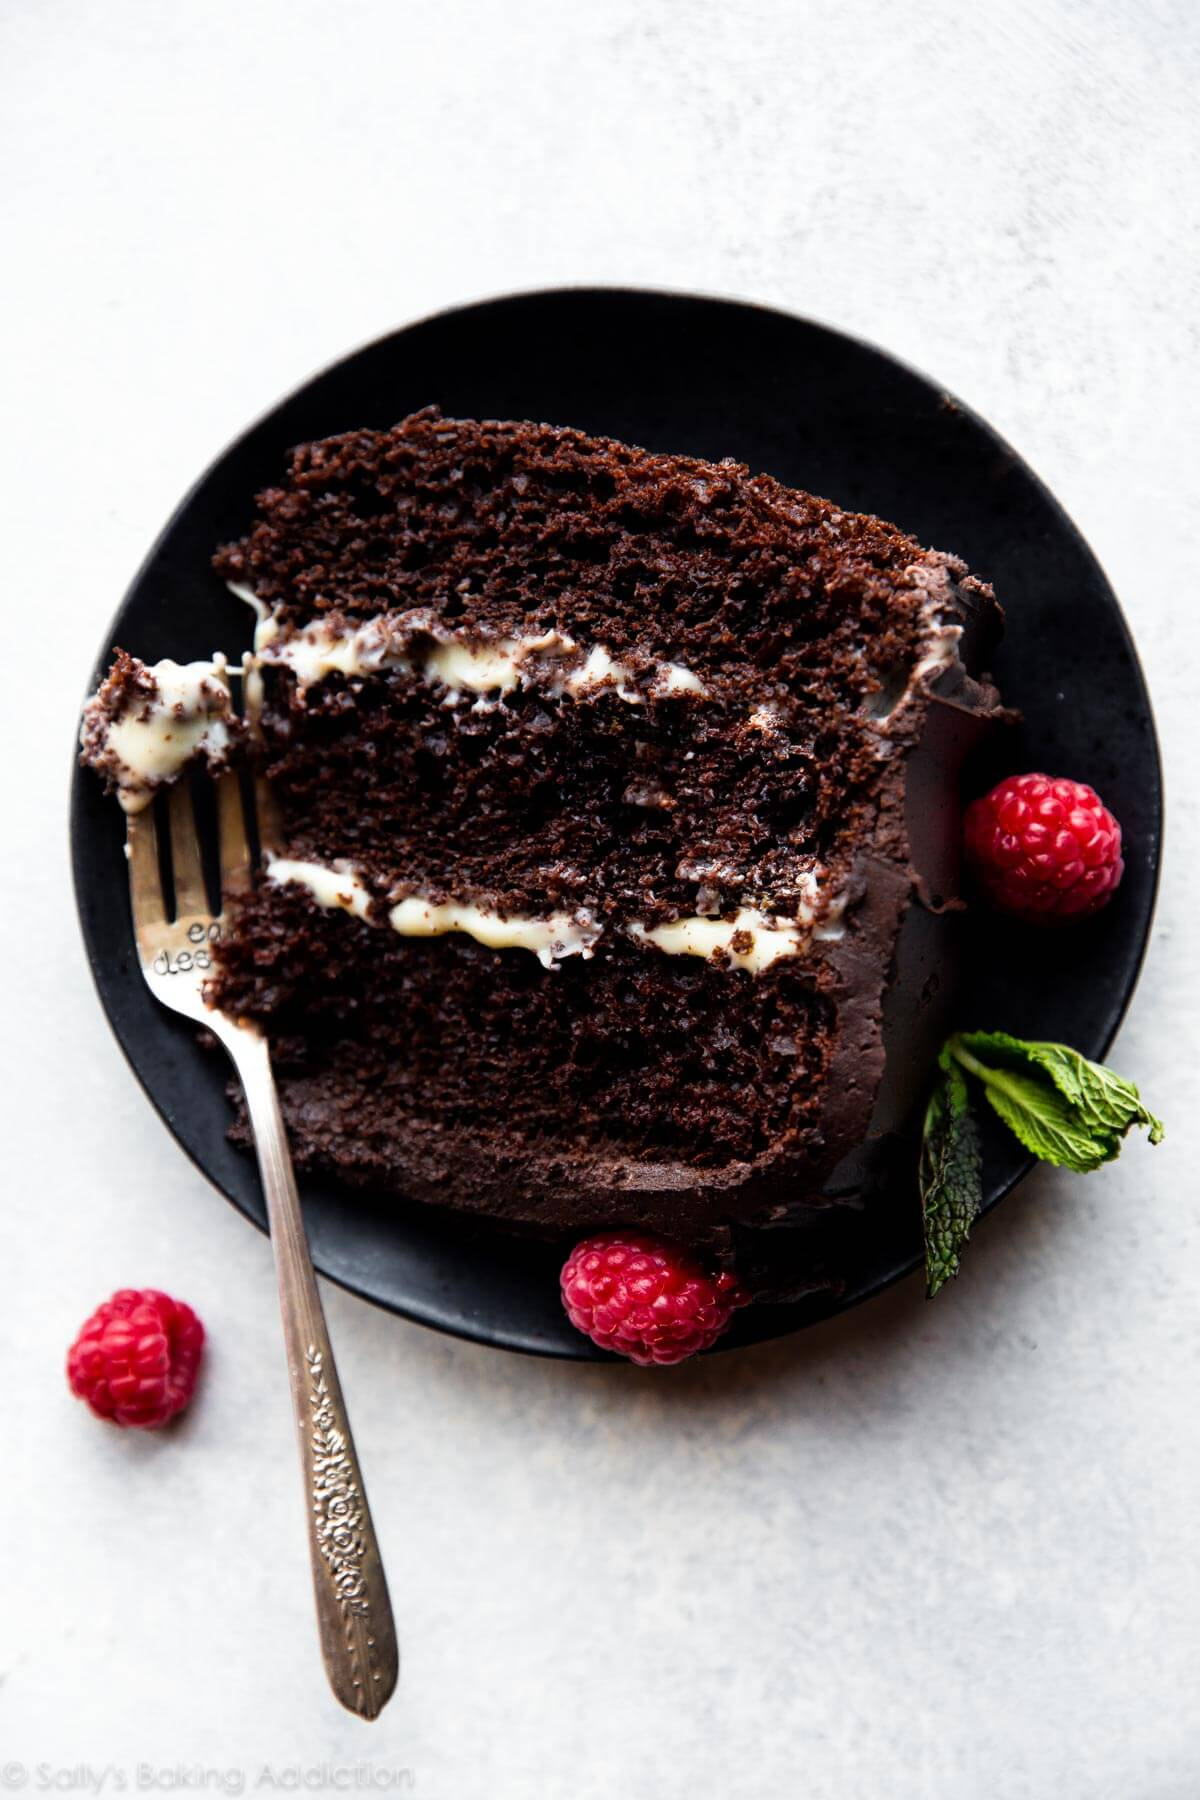 Tuxedo Cake - Sallys Baking Addiction